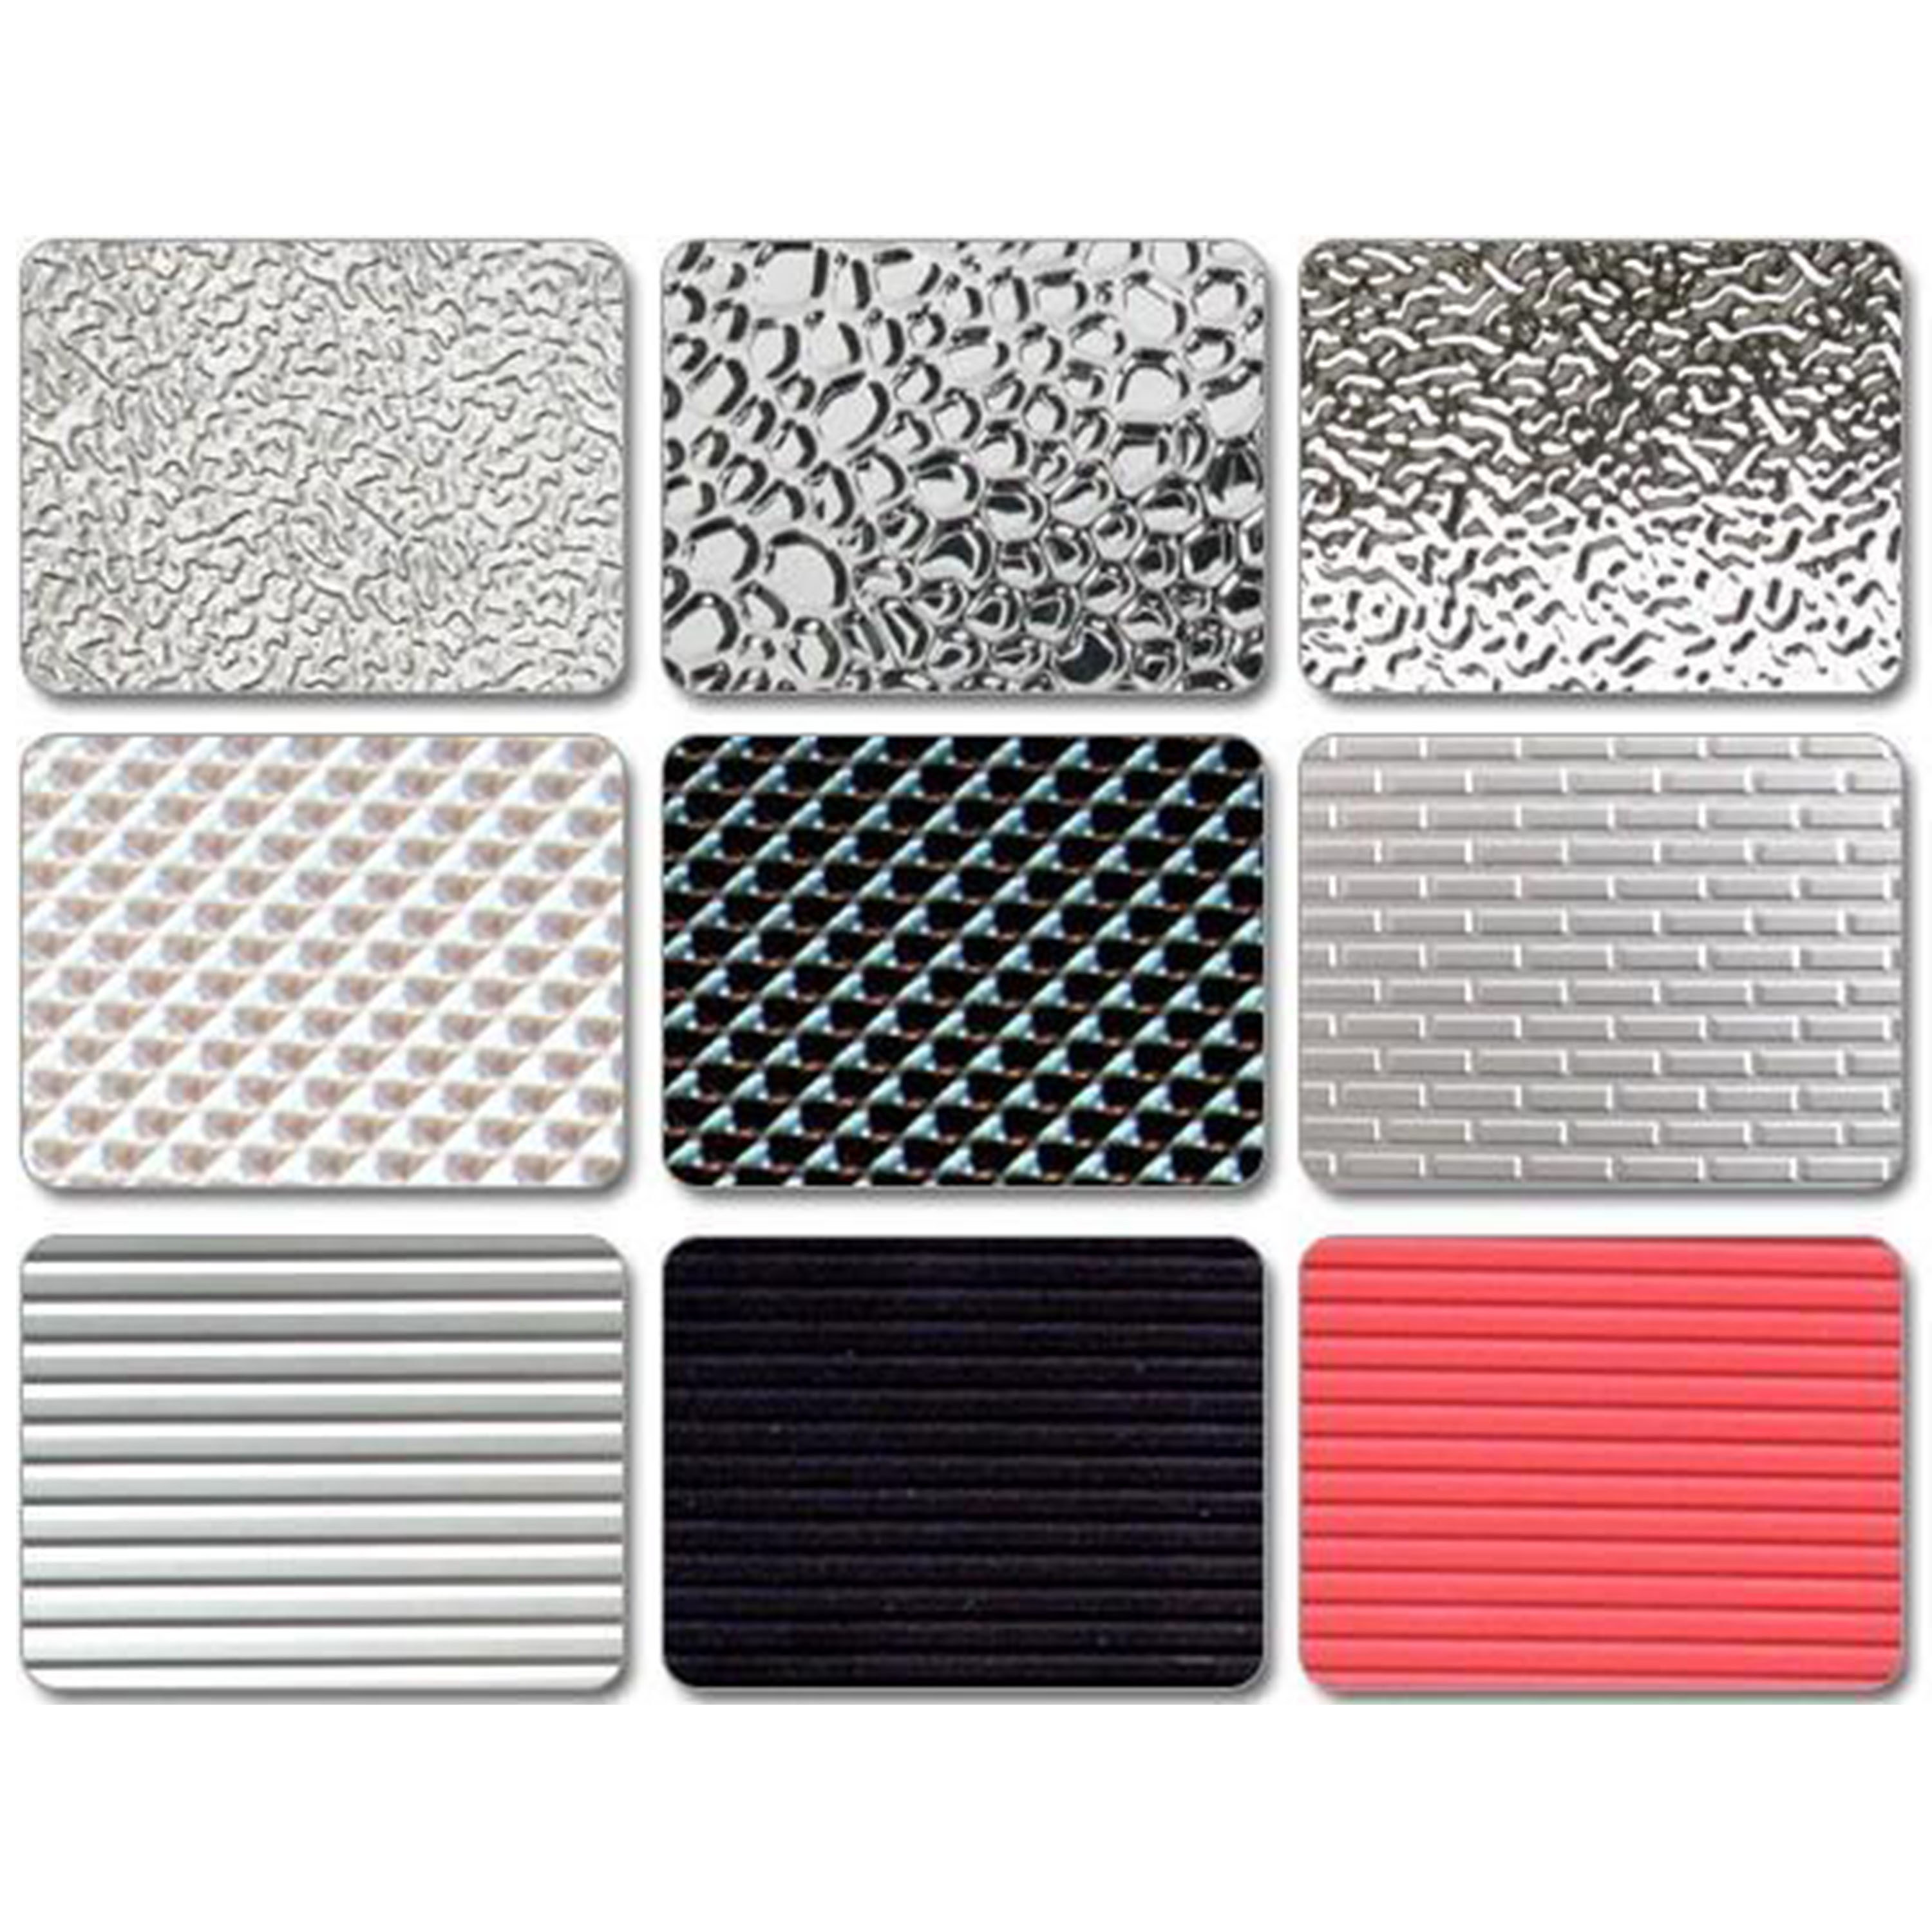 cladding sheet prod concept facade product design aluminum steel for perforated decor decorative metal